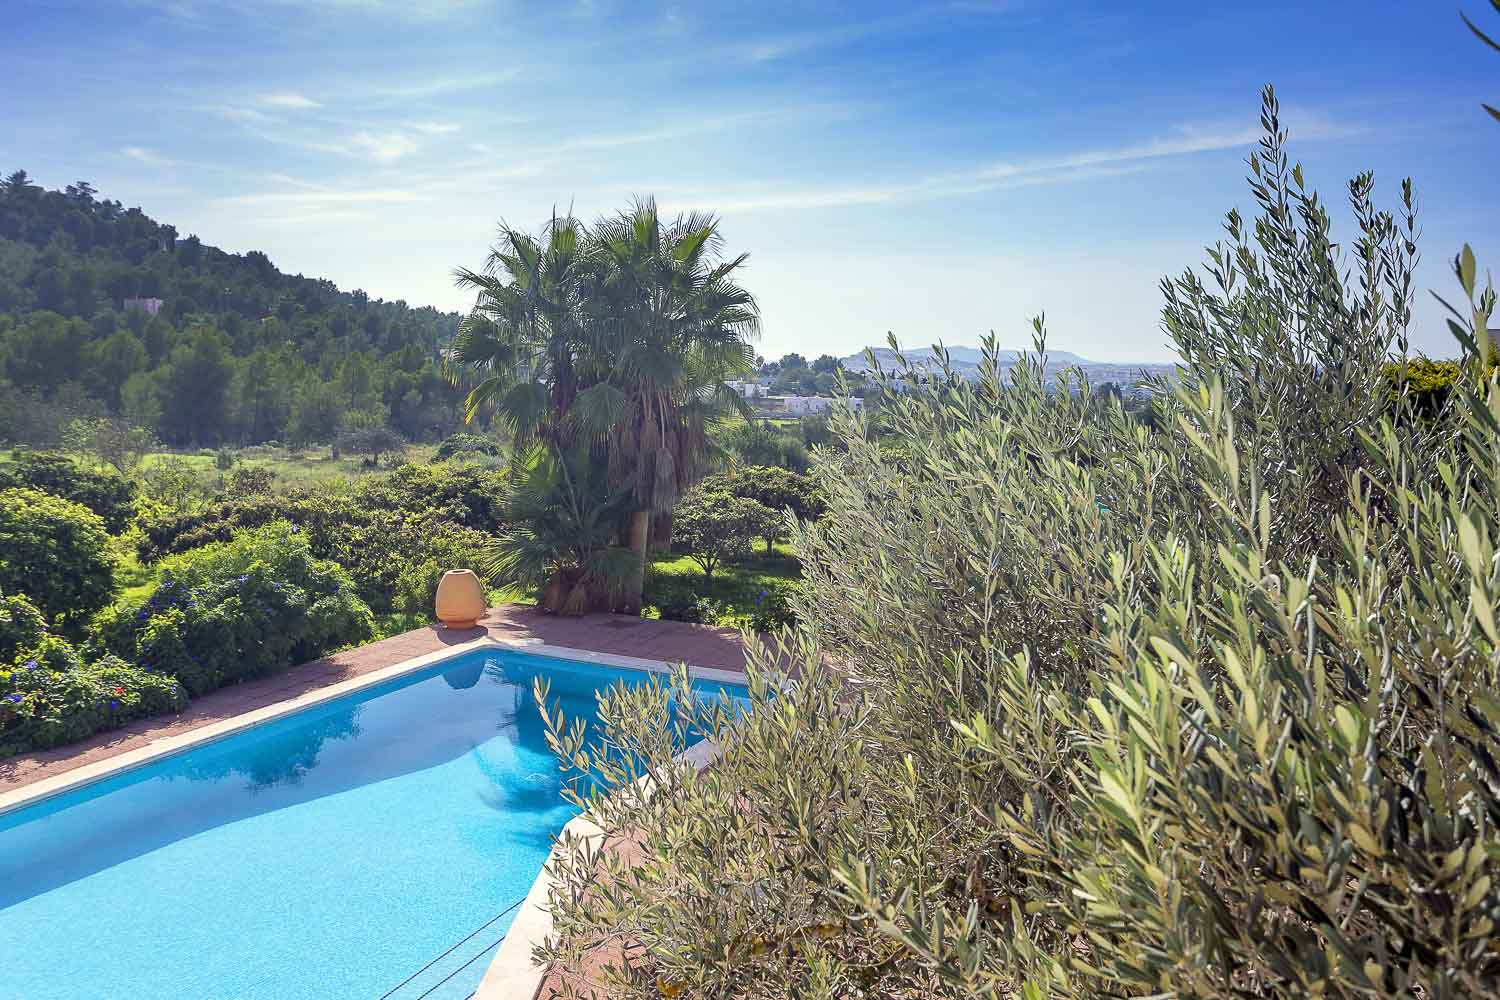 View of the stunning natural landscape from the terrace and also the swimming pool